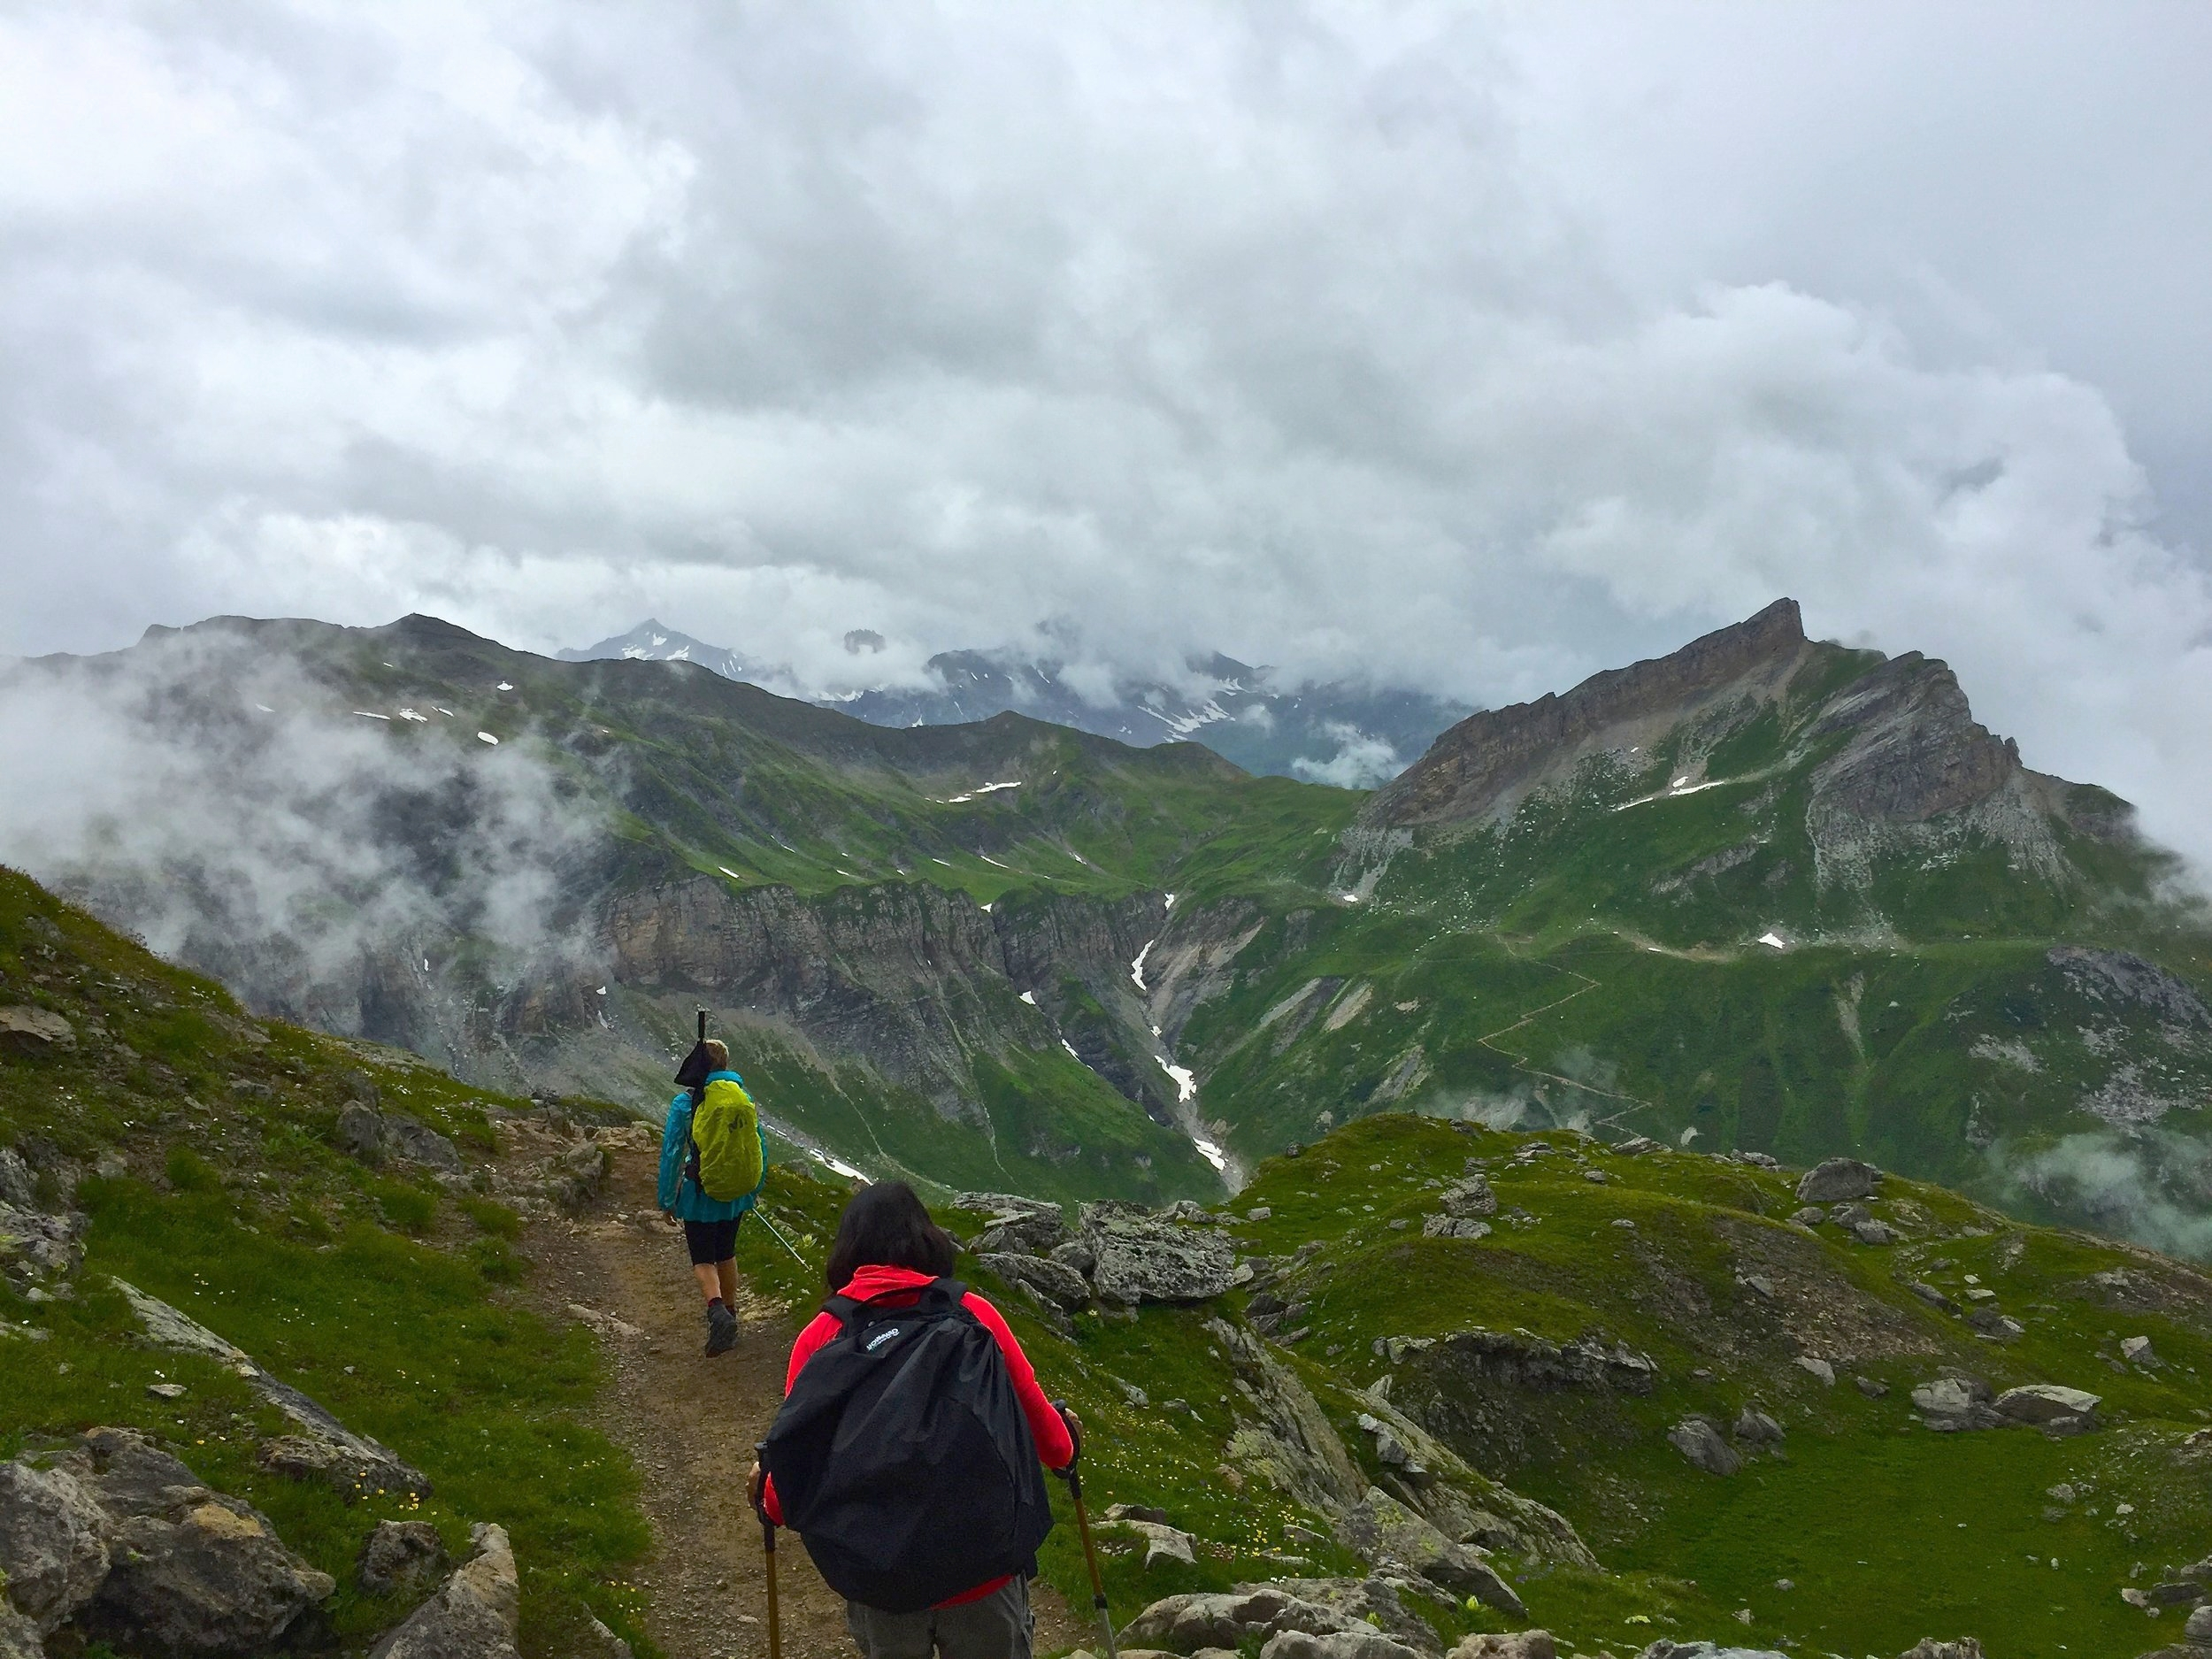 Hiking past Col du Bonhomme we find ourselves in and above the clouds.